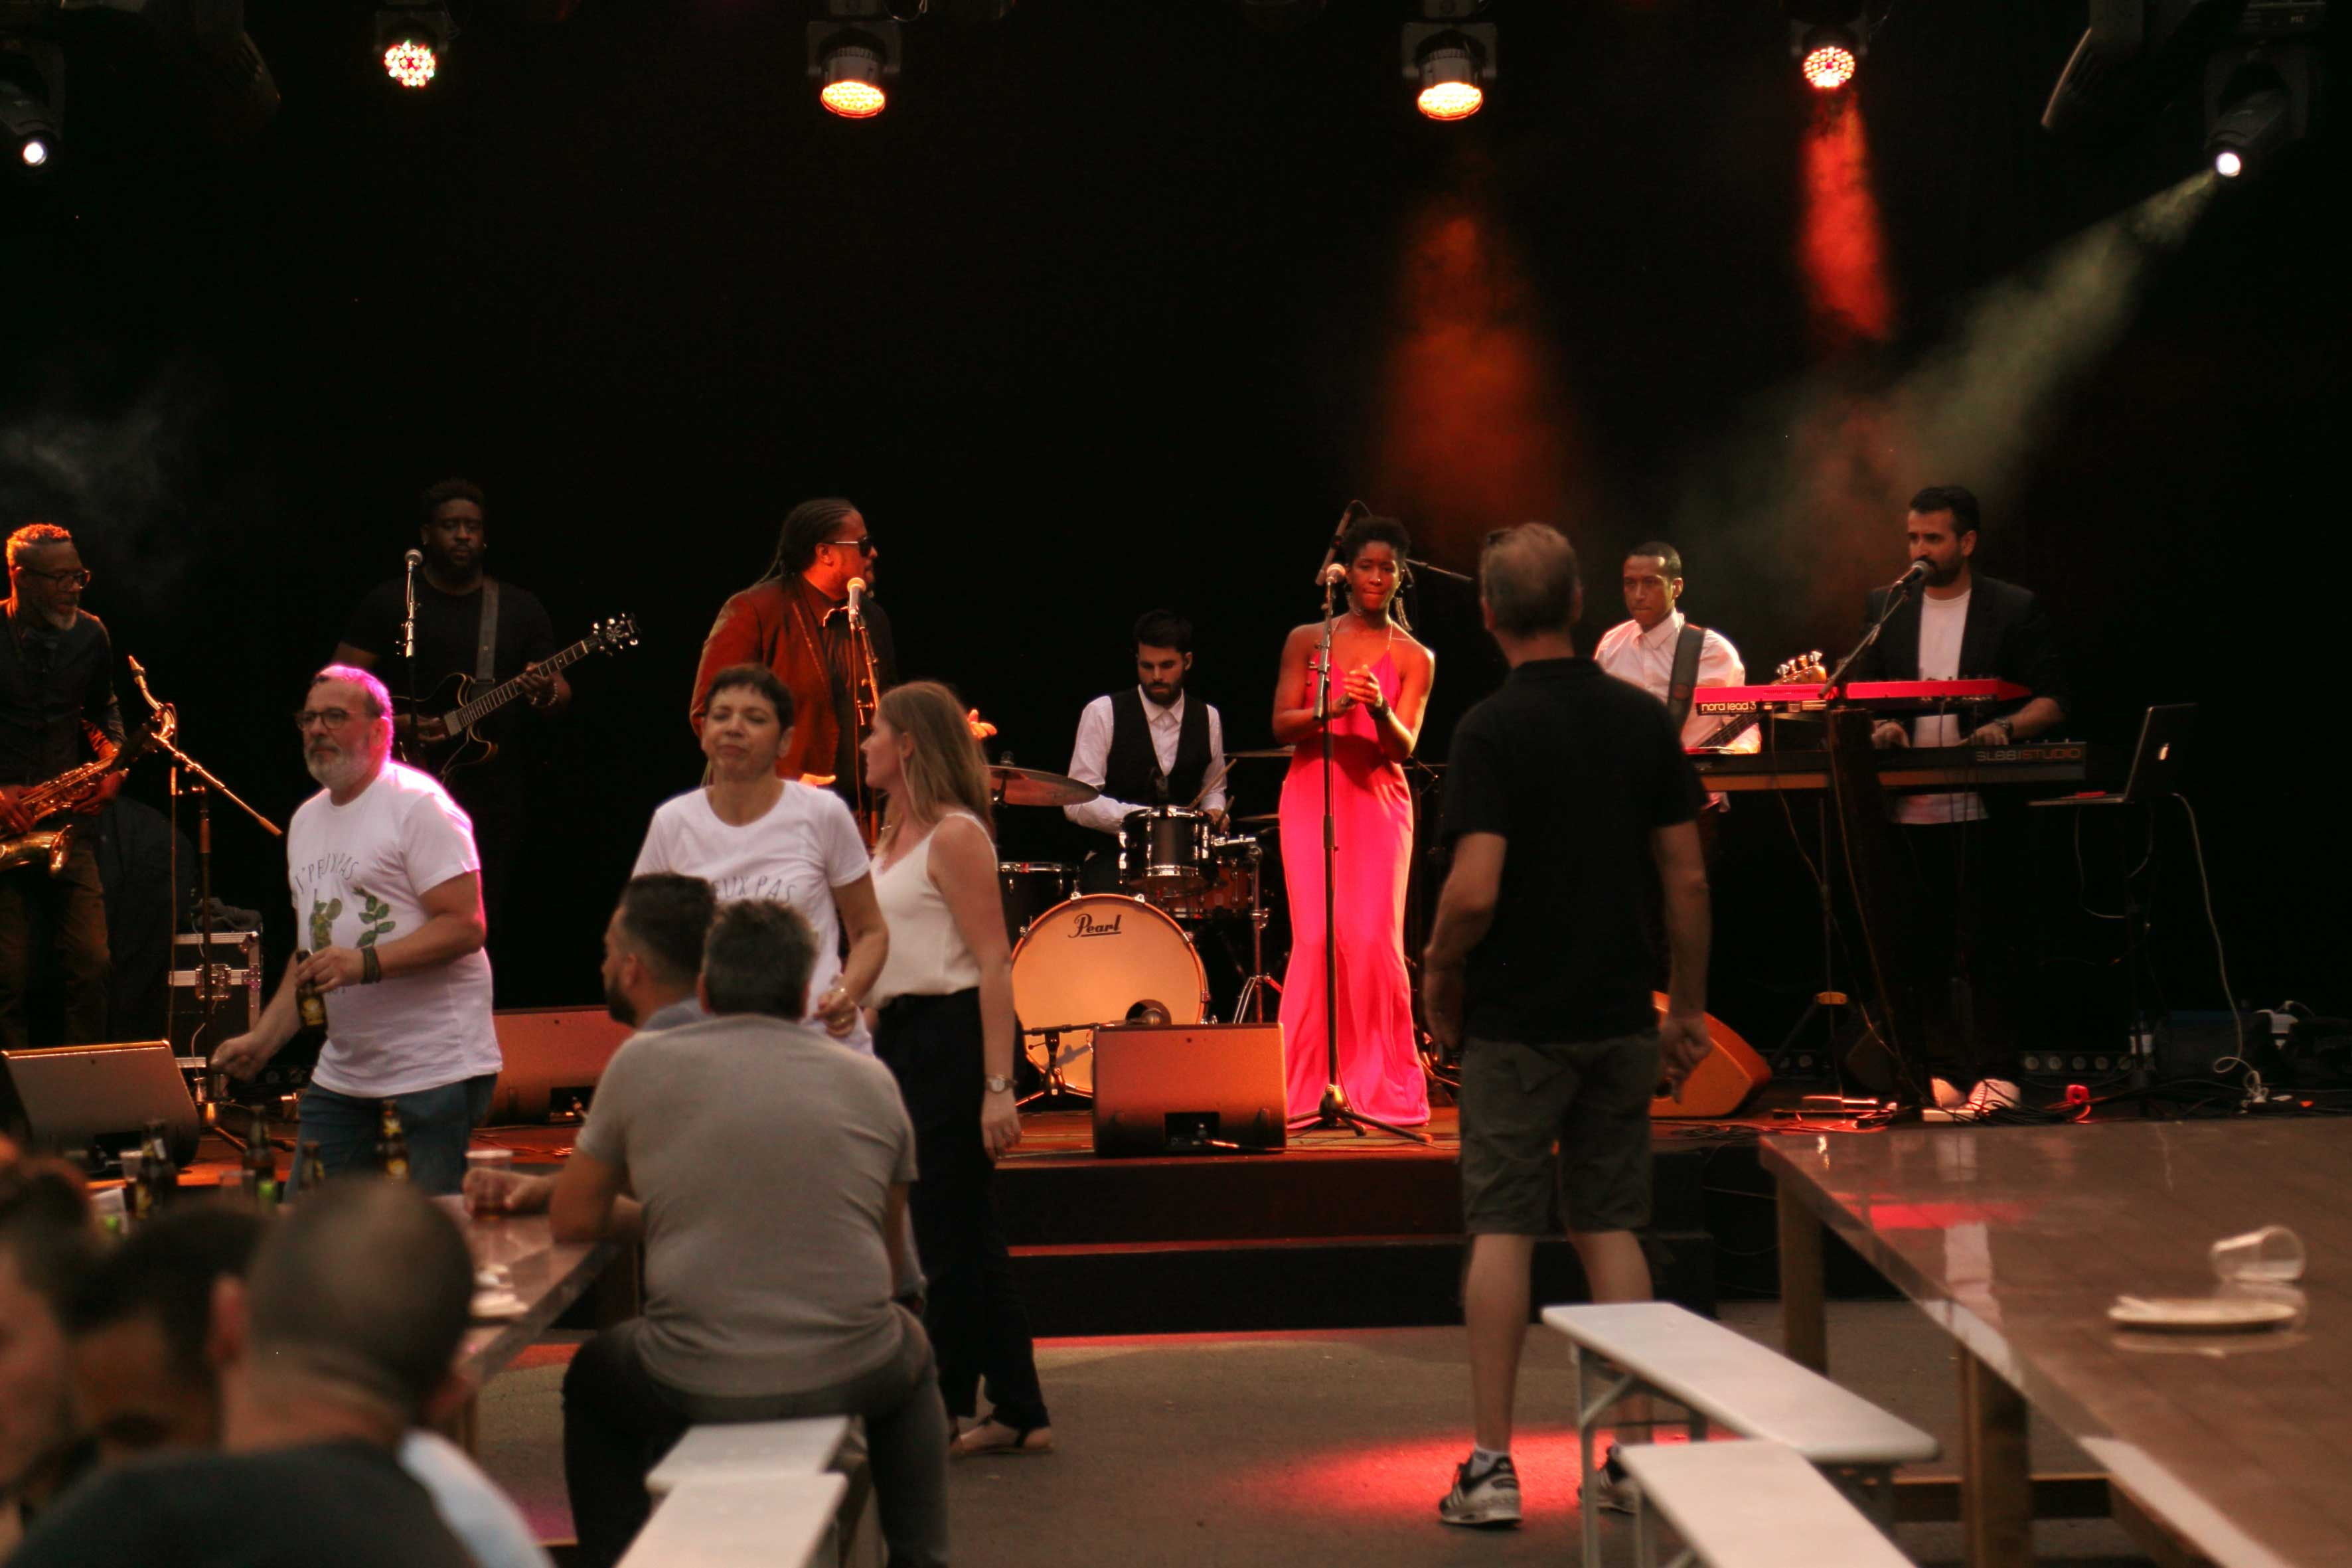 aucop-soiree-wissous-concert-musique-music-events-agency